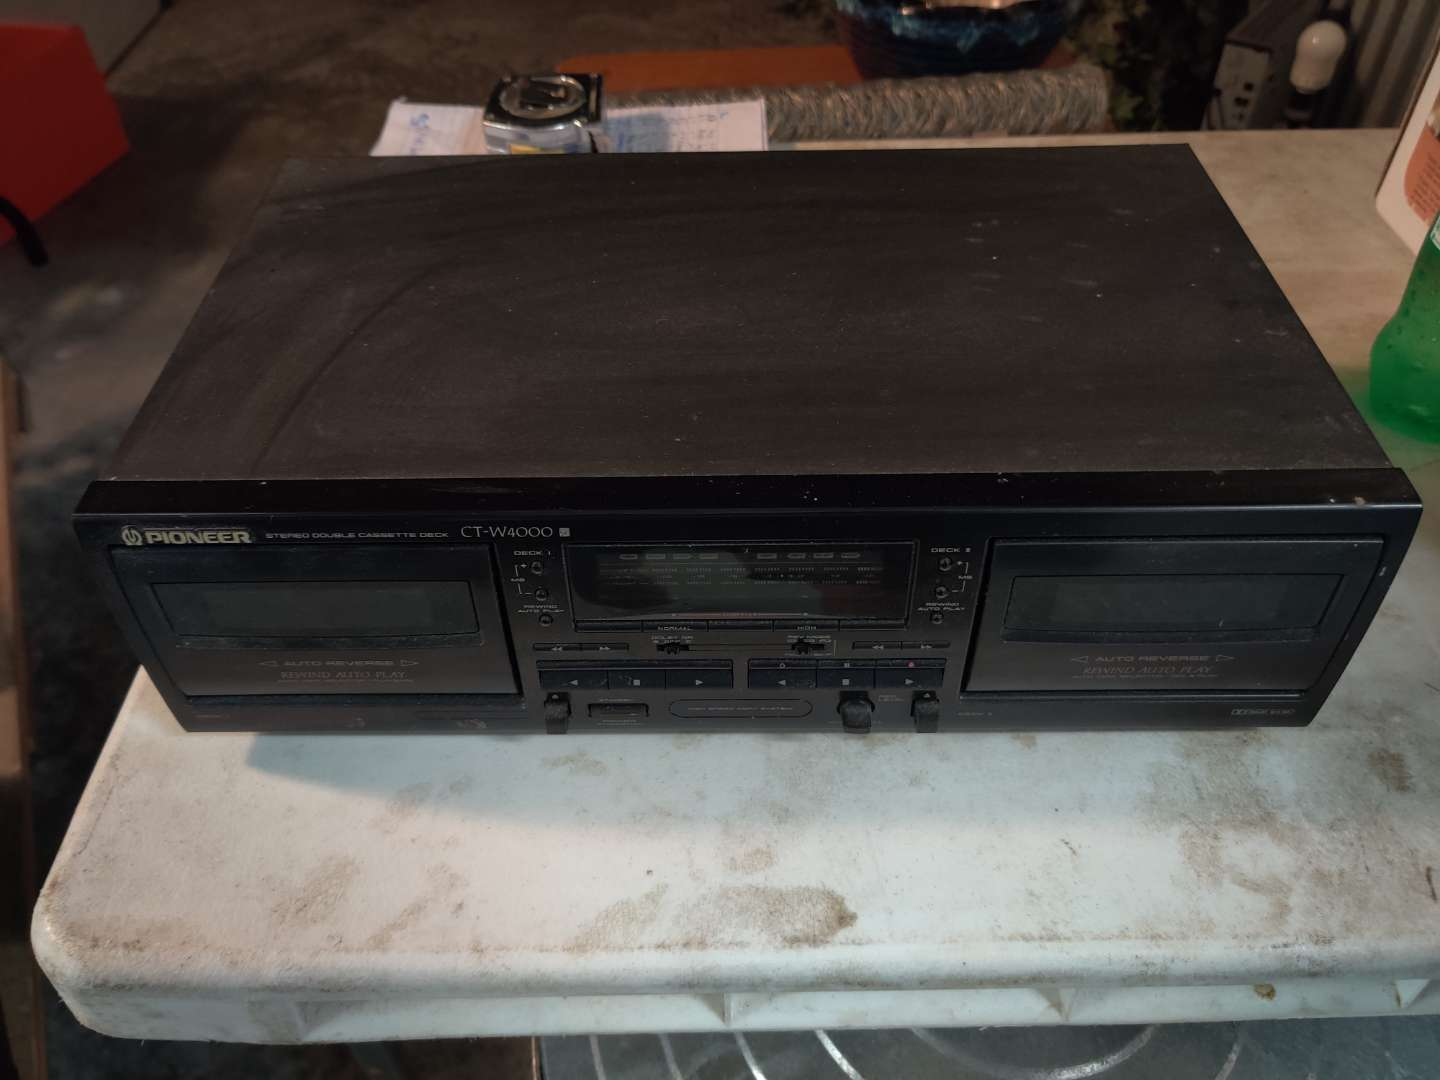 # 85 pioneer dual cassette player ct-w4000 works great